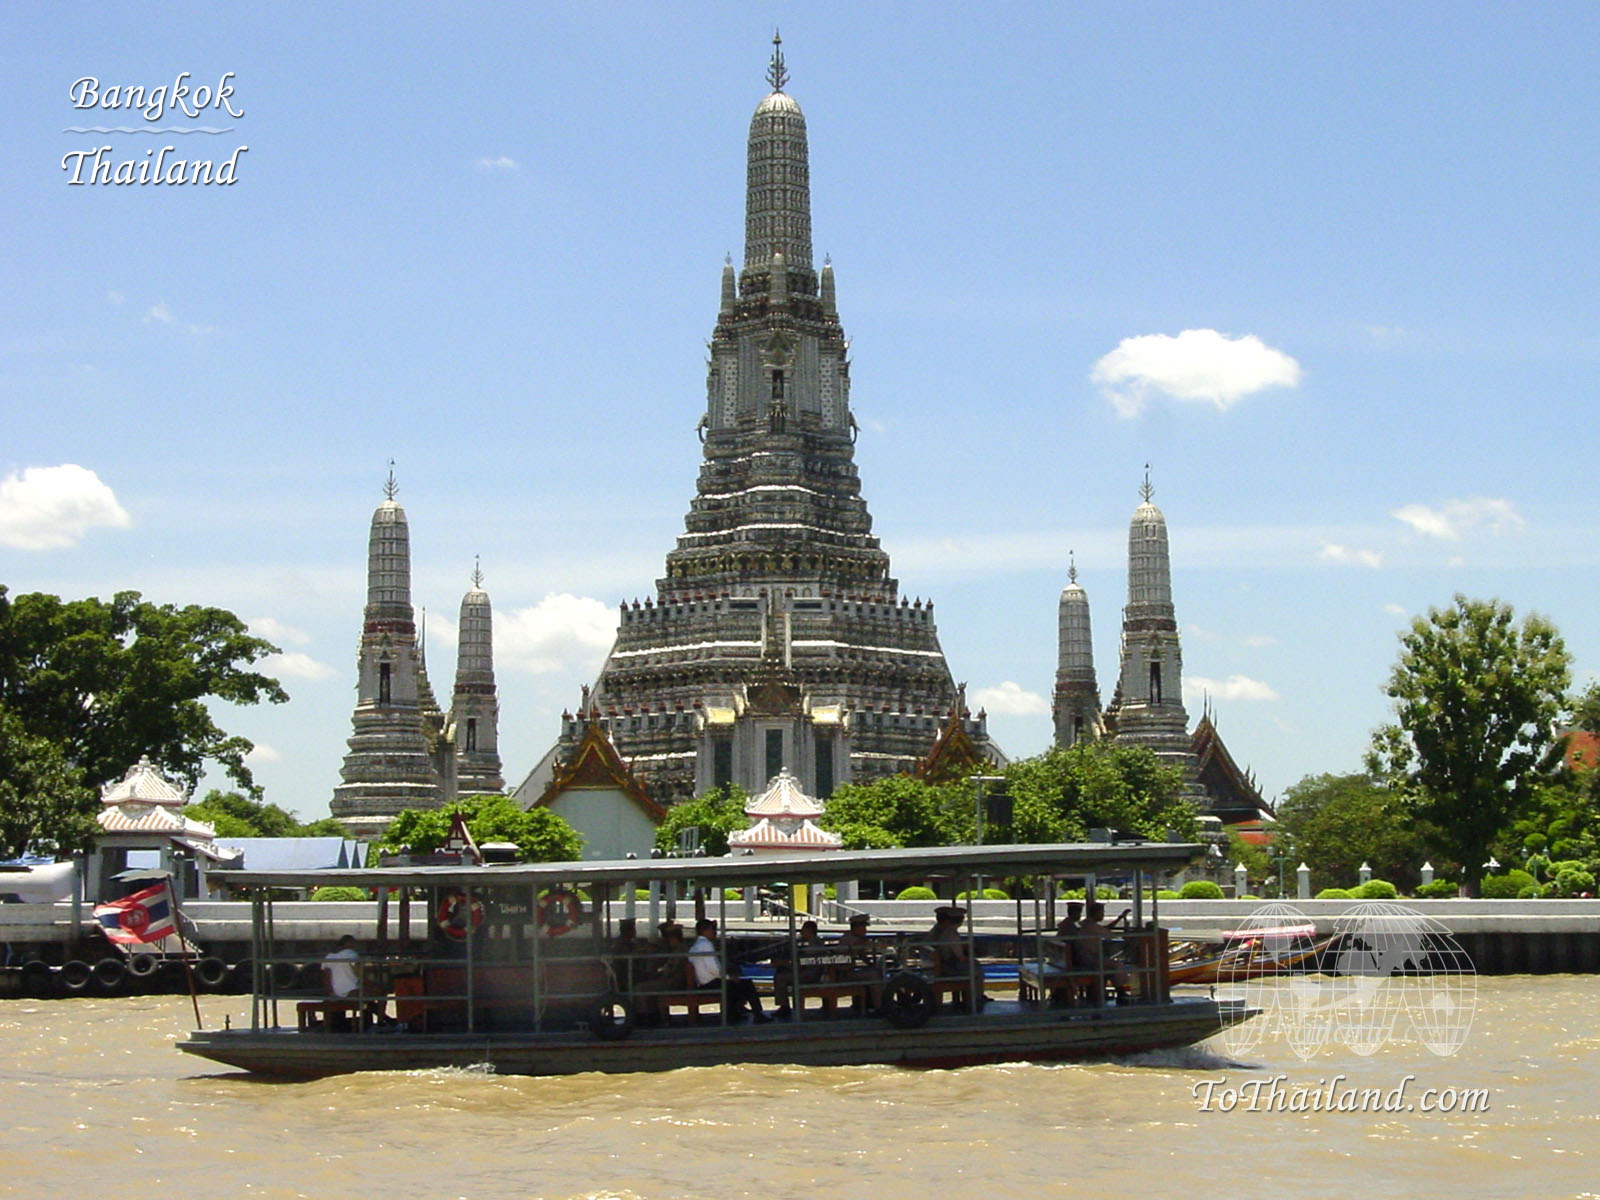 WoW Tour and Travel: WAT ARUN (TEMPLE OF DAWN)